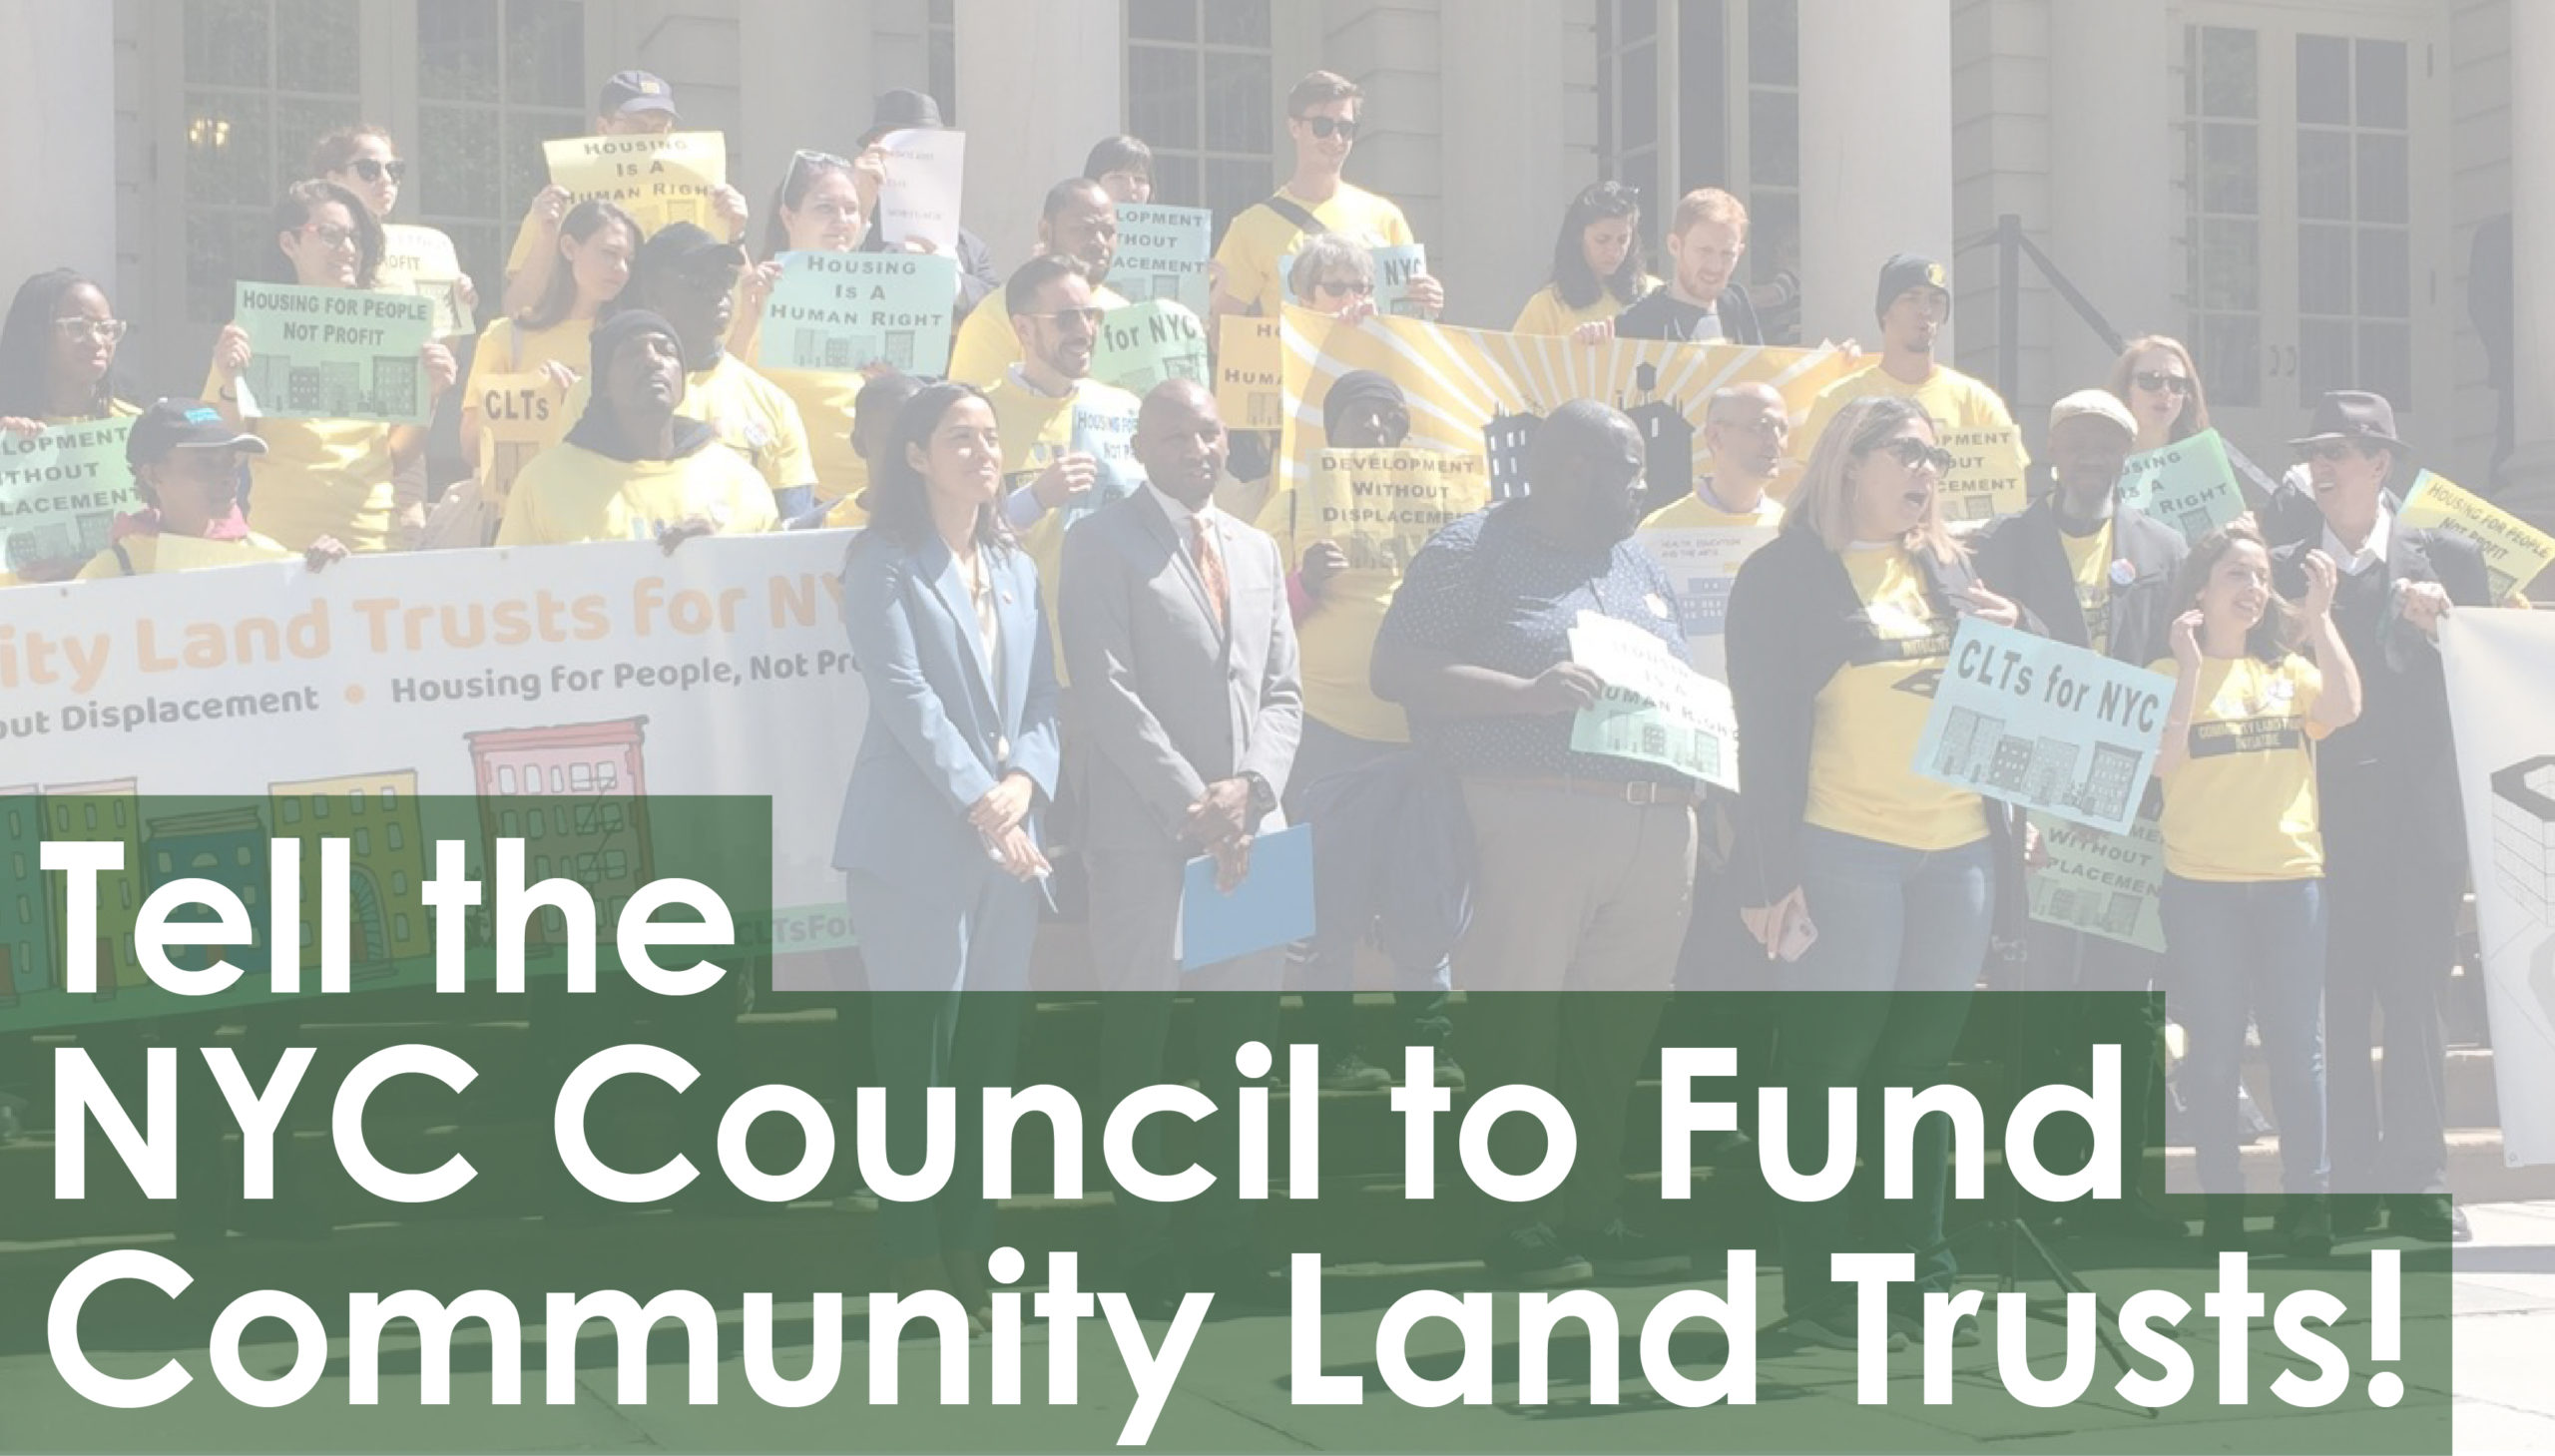 Tell the NYC Council to Fund Community Land Trusts!